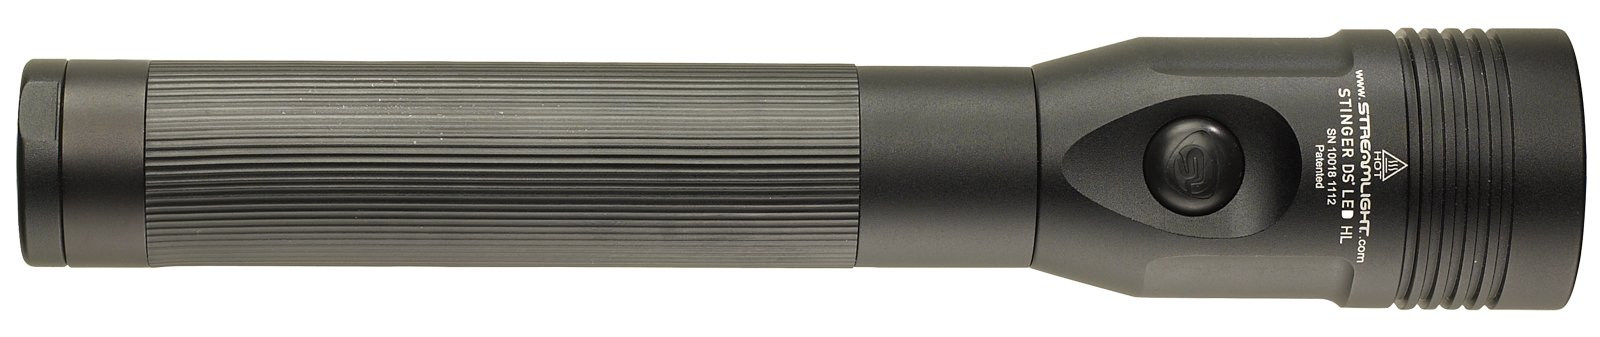 Streamlight 75453 Stinger DS LED High Lumen Rechargeable Flashlight without Charger by Streamlight (Image #3)